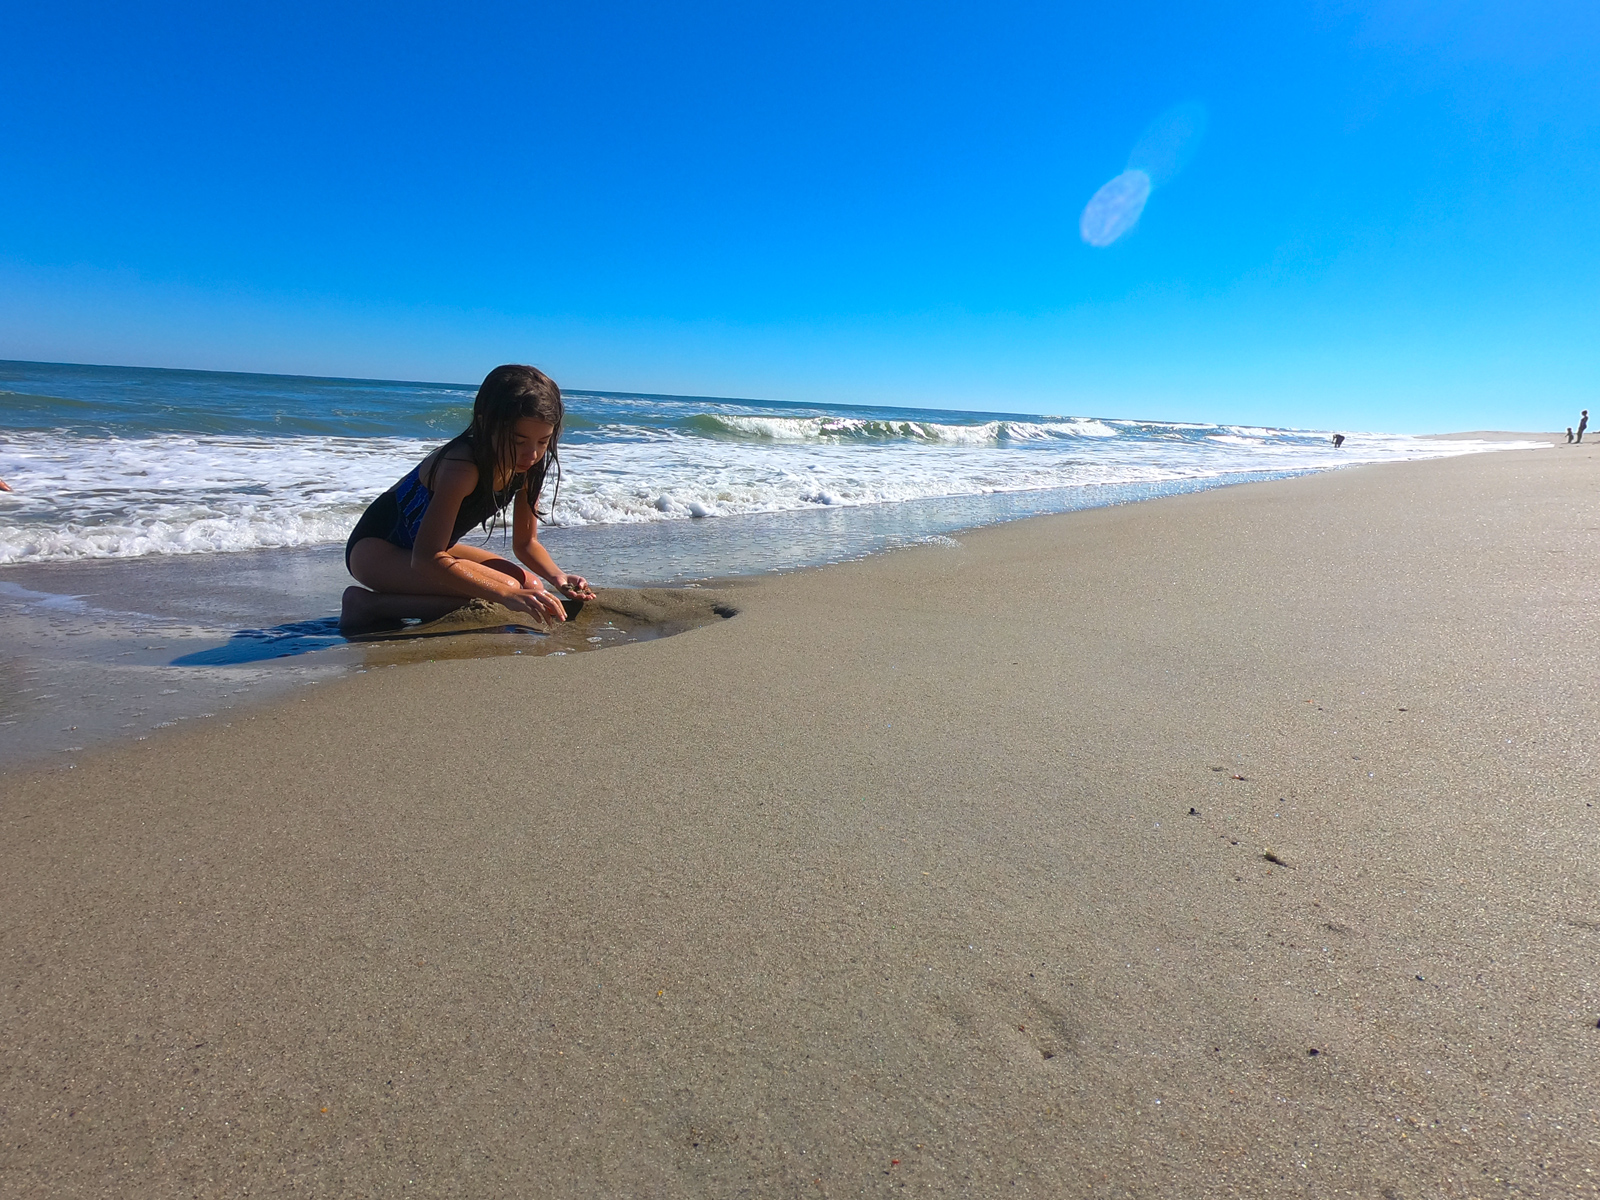 Girl playing in the surf under a blue sky at Carolina Beach in North Carolina